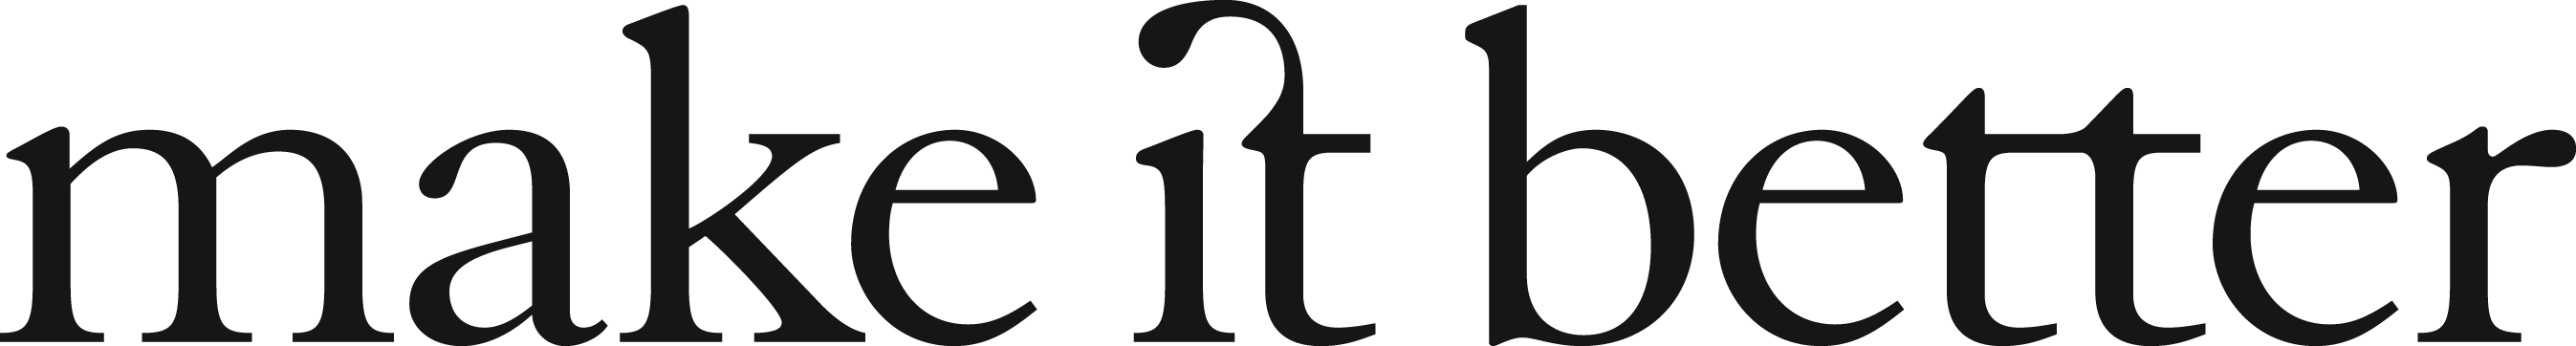 logo_jan2011_grayscale_plain